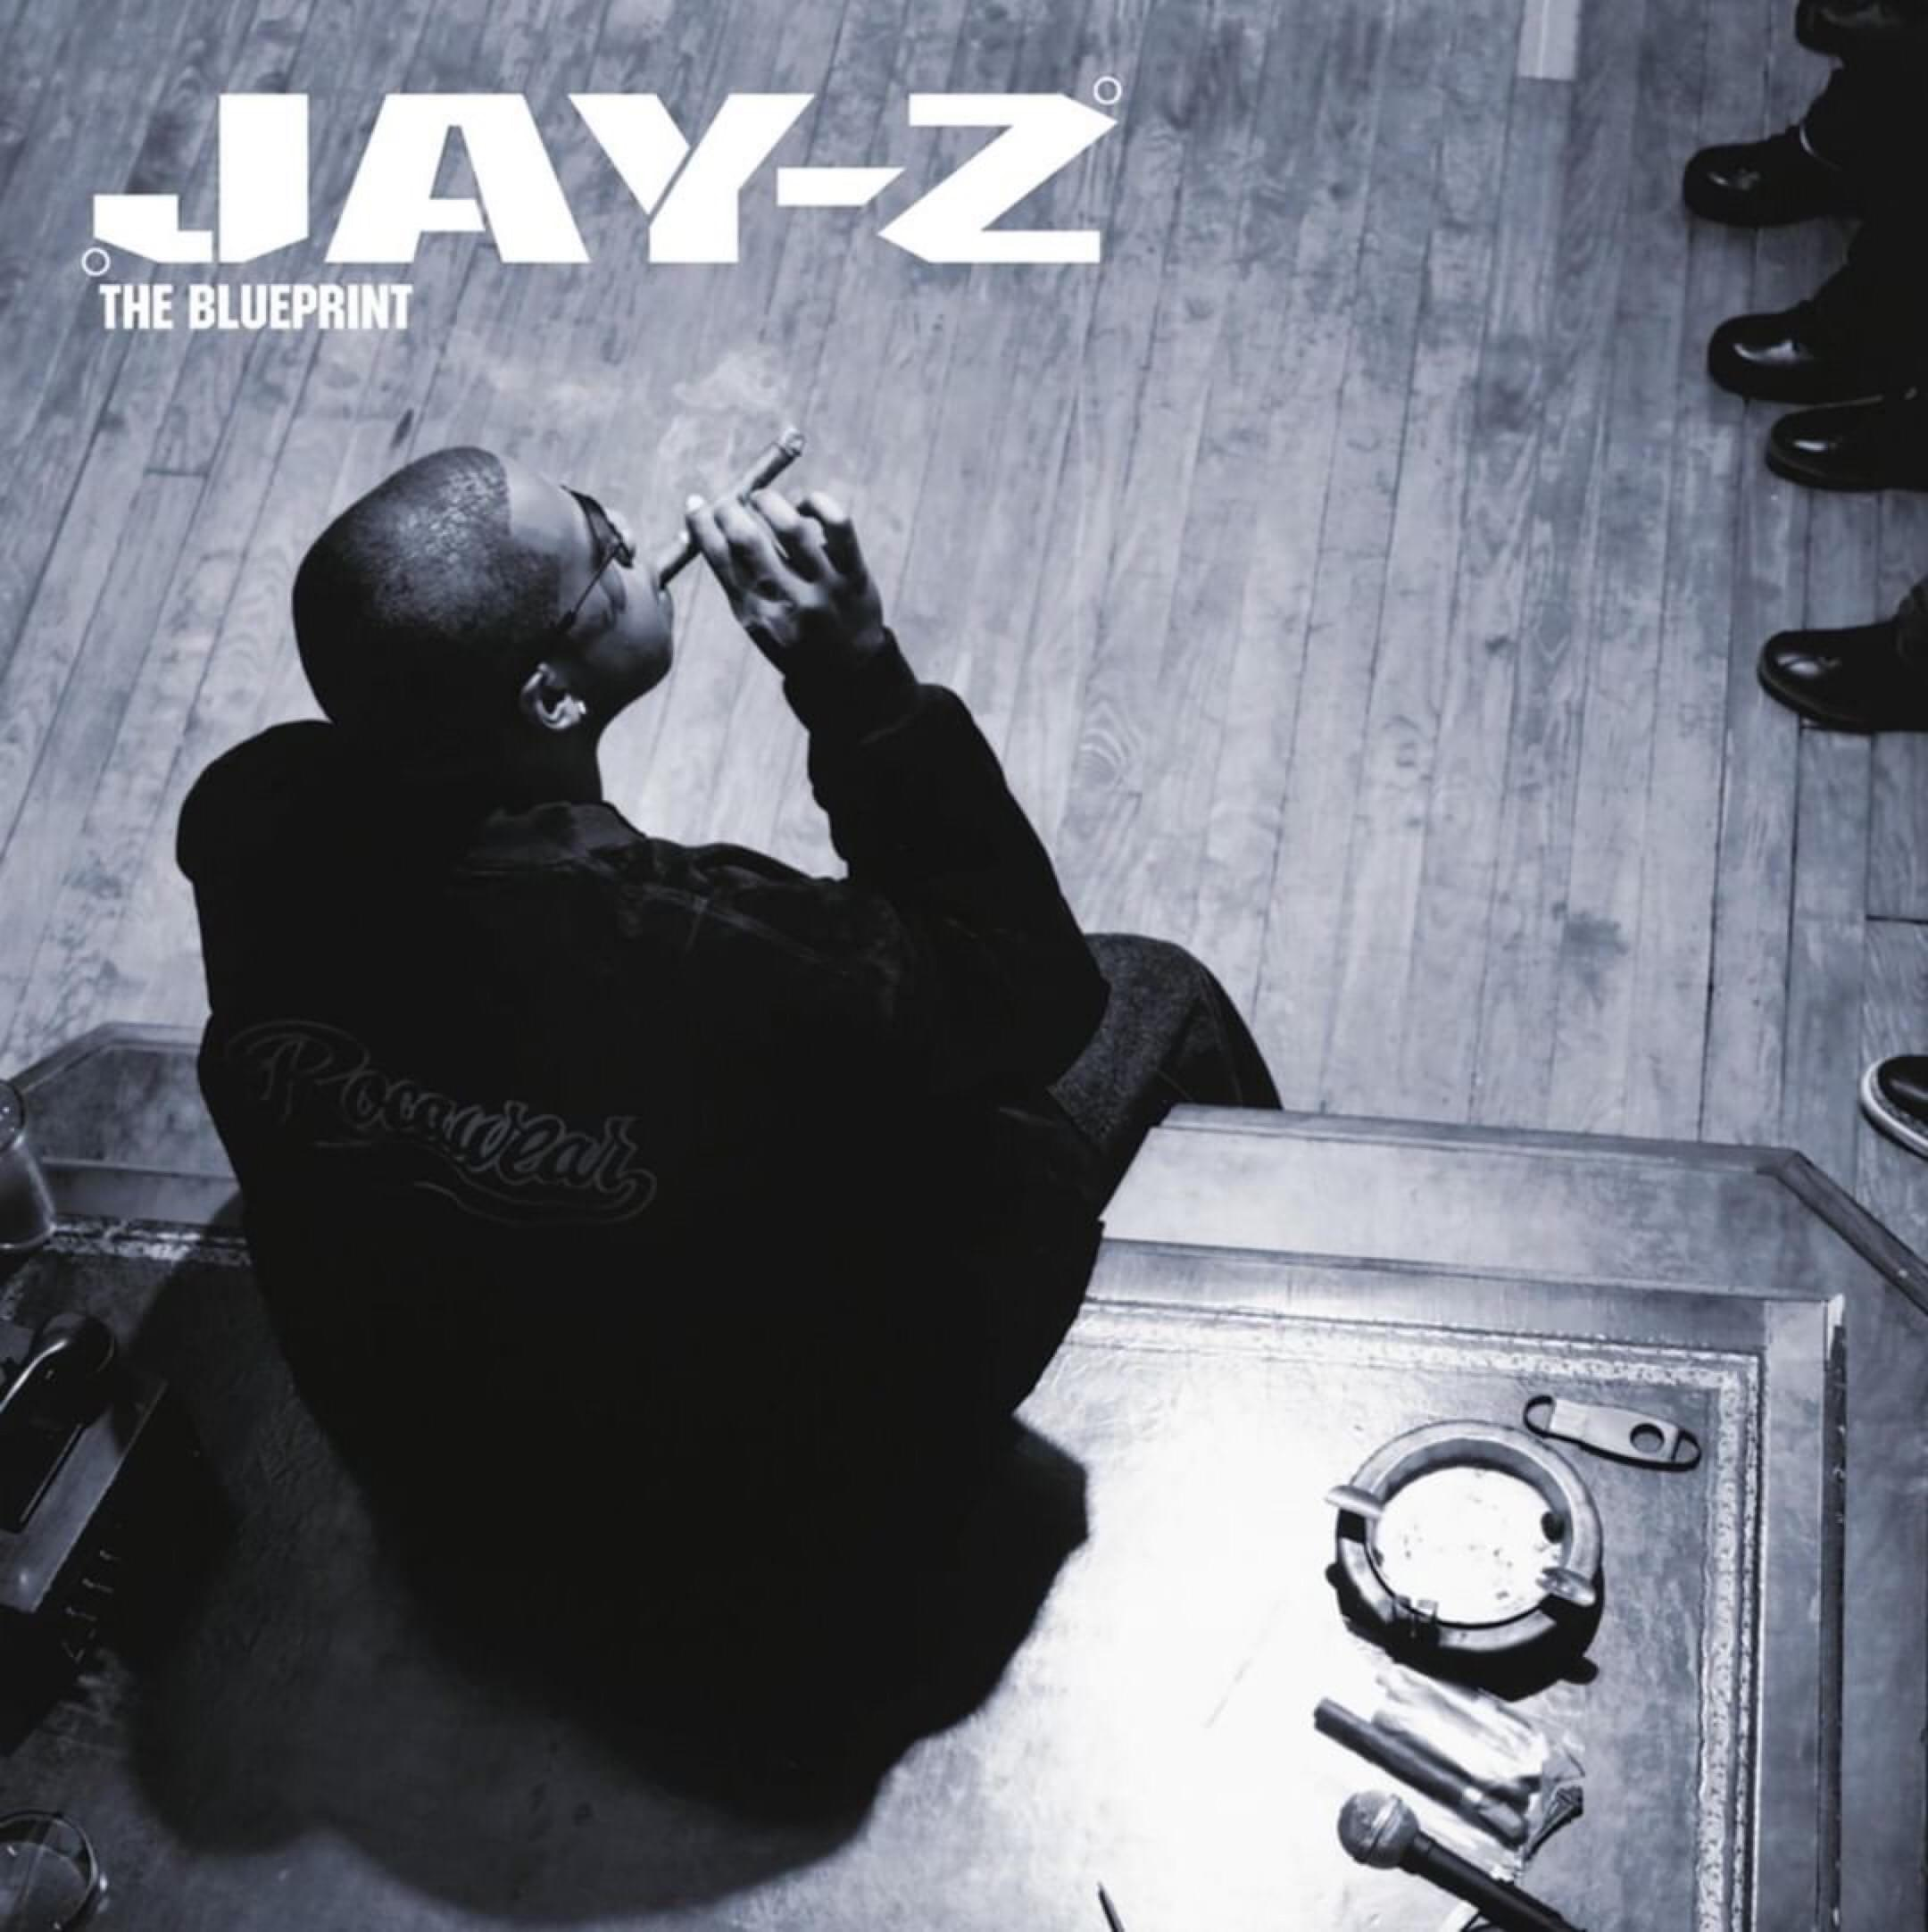 """Jay-Z's """"The Blueprint"""" Will Be Archived in Library of Congress"""